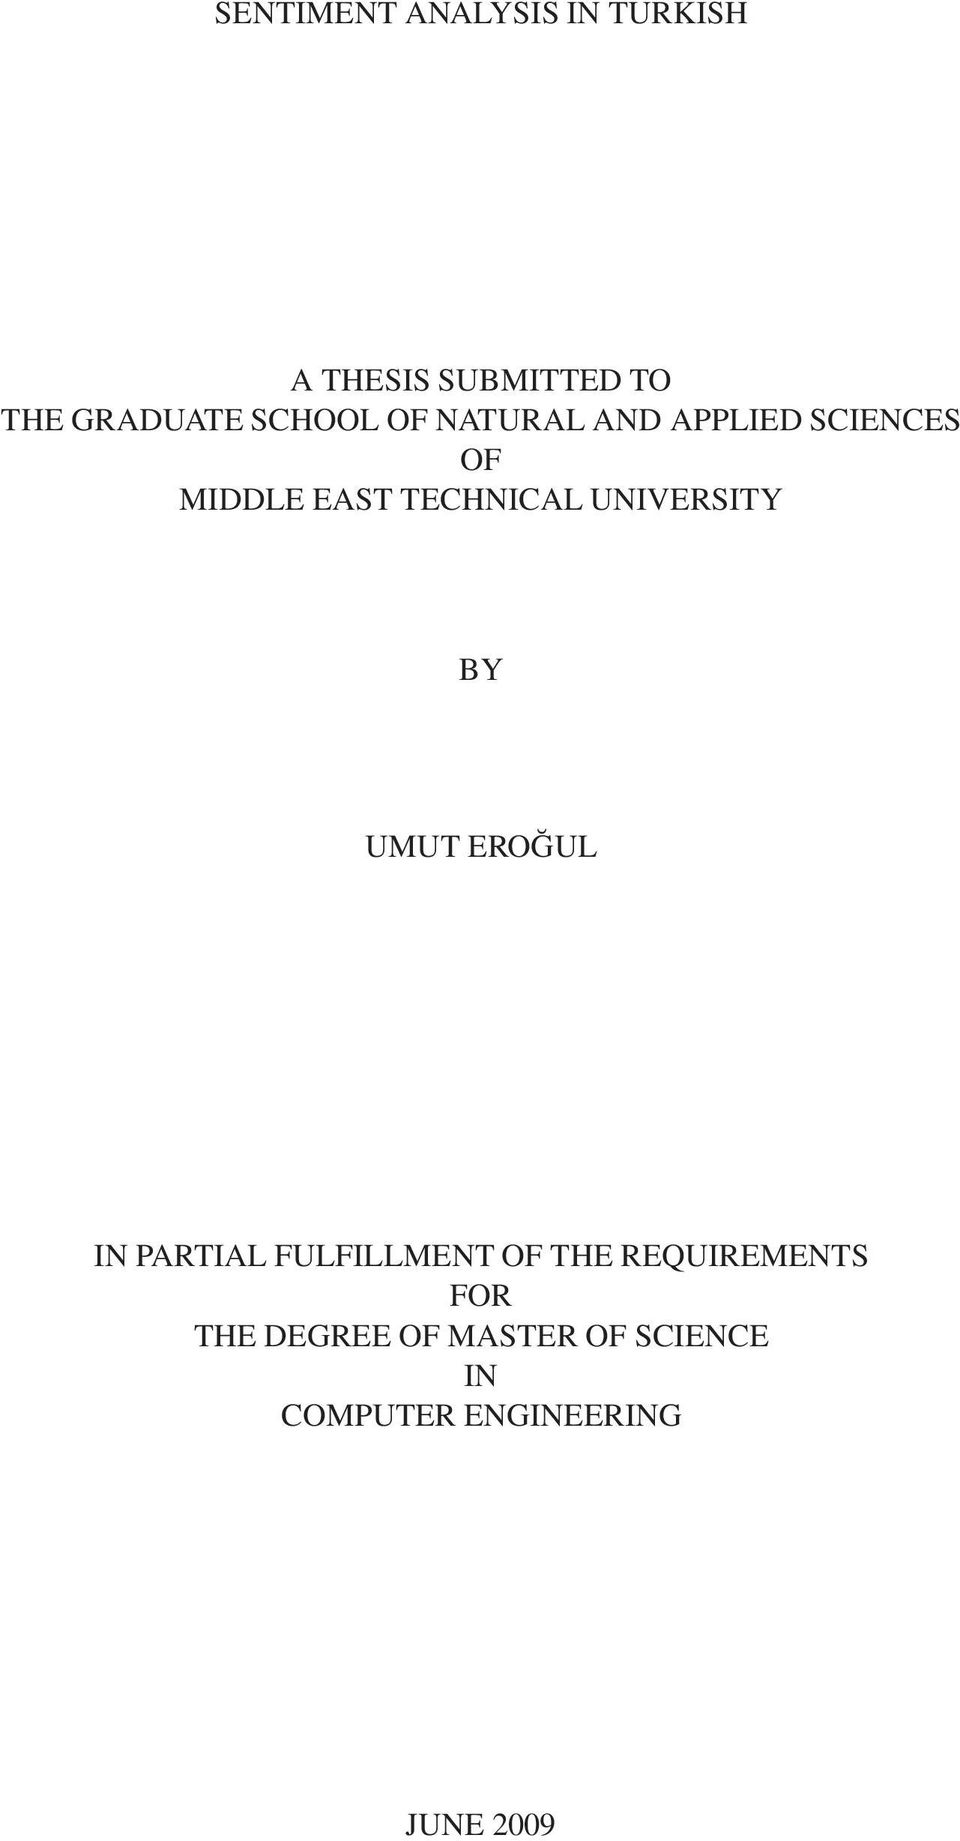 UNIVERSITY BY UMUT EROĞUL IN PARTIAL FULFILLMENT OF THE